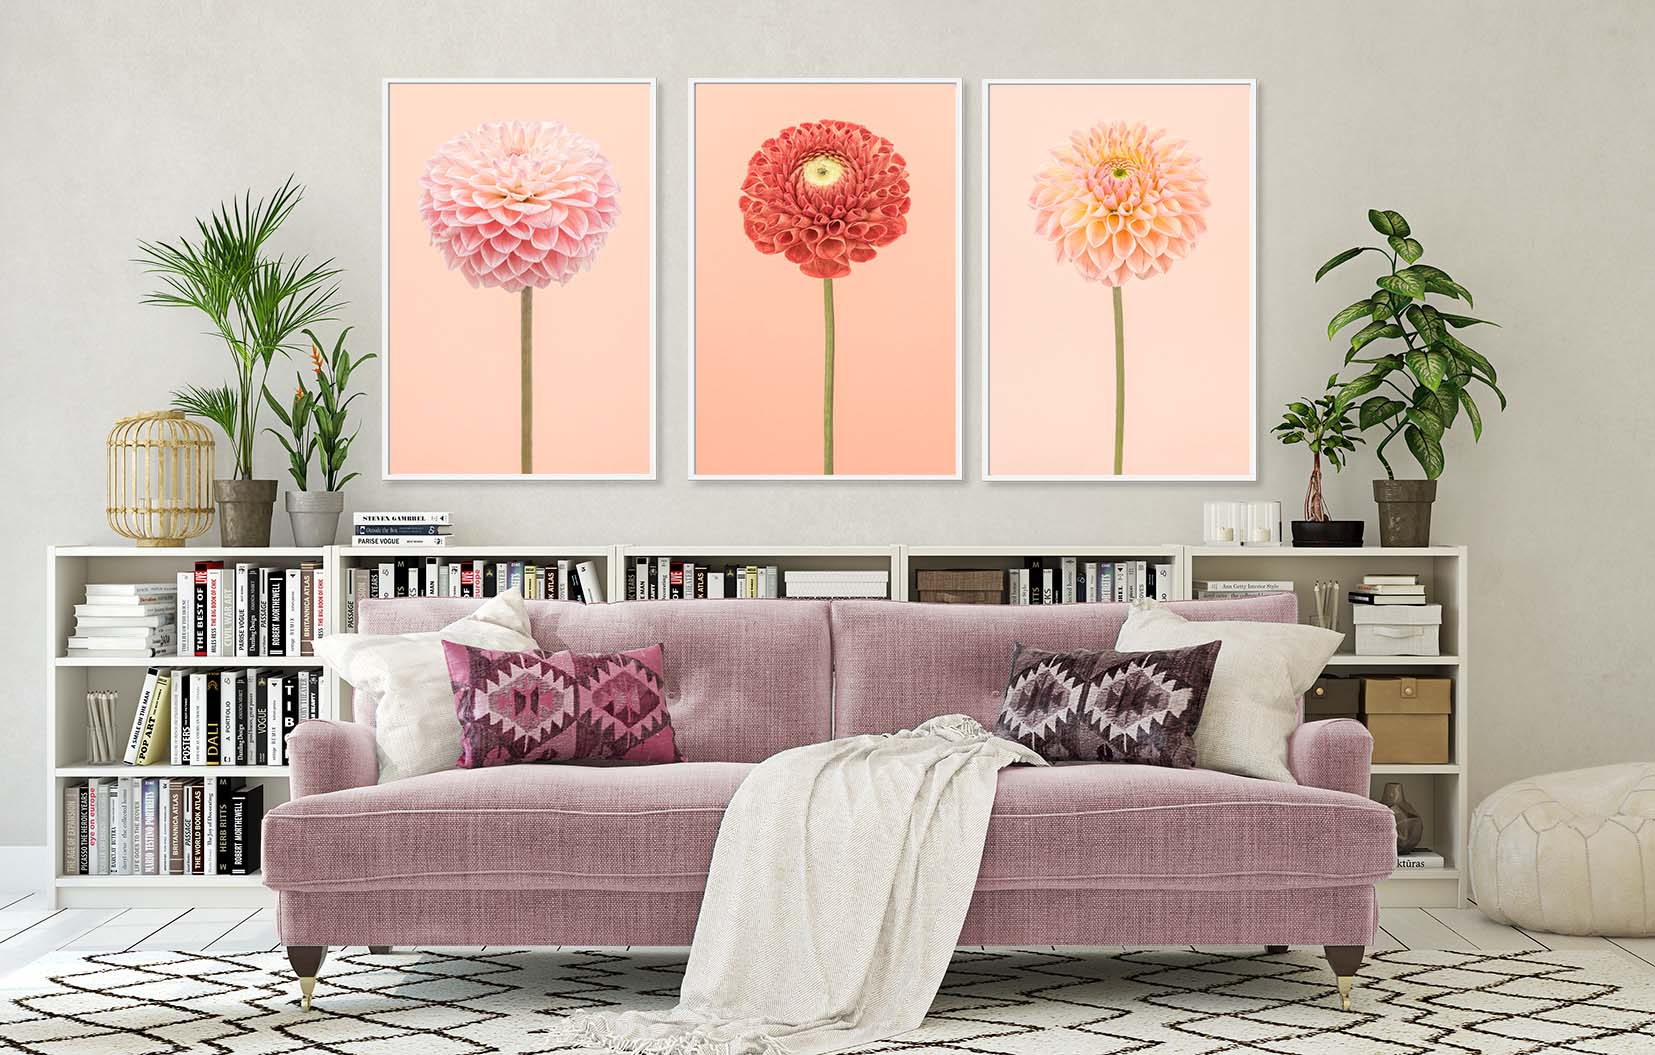 Three limited edition photographic prints of dahlias, framed and on the wall. Floral prints by award-winning photographer Paul Coghlin FBIPP.